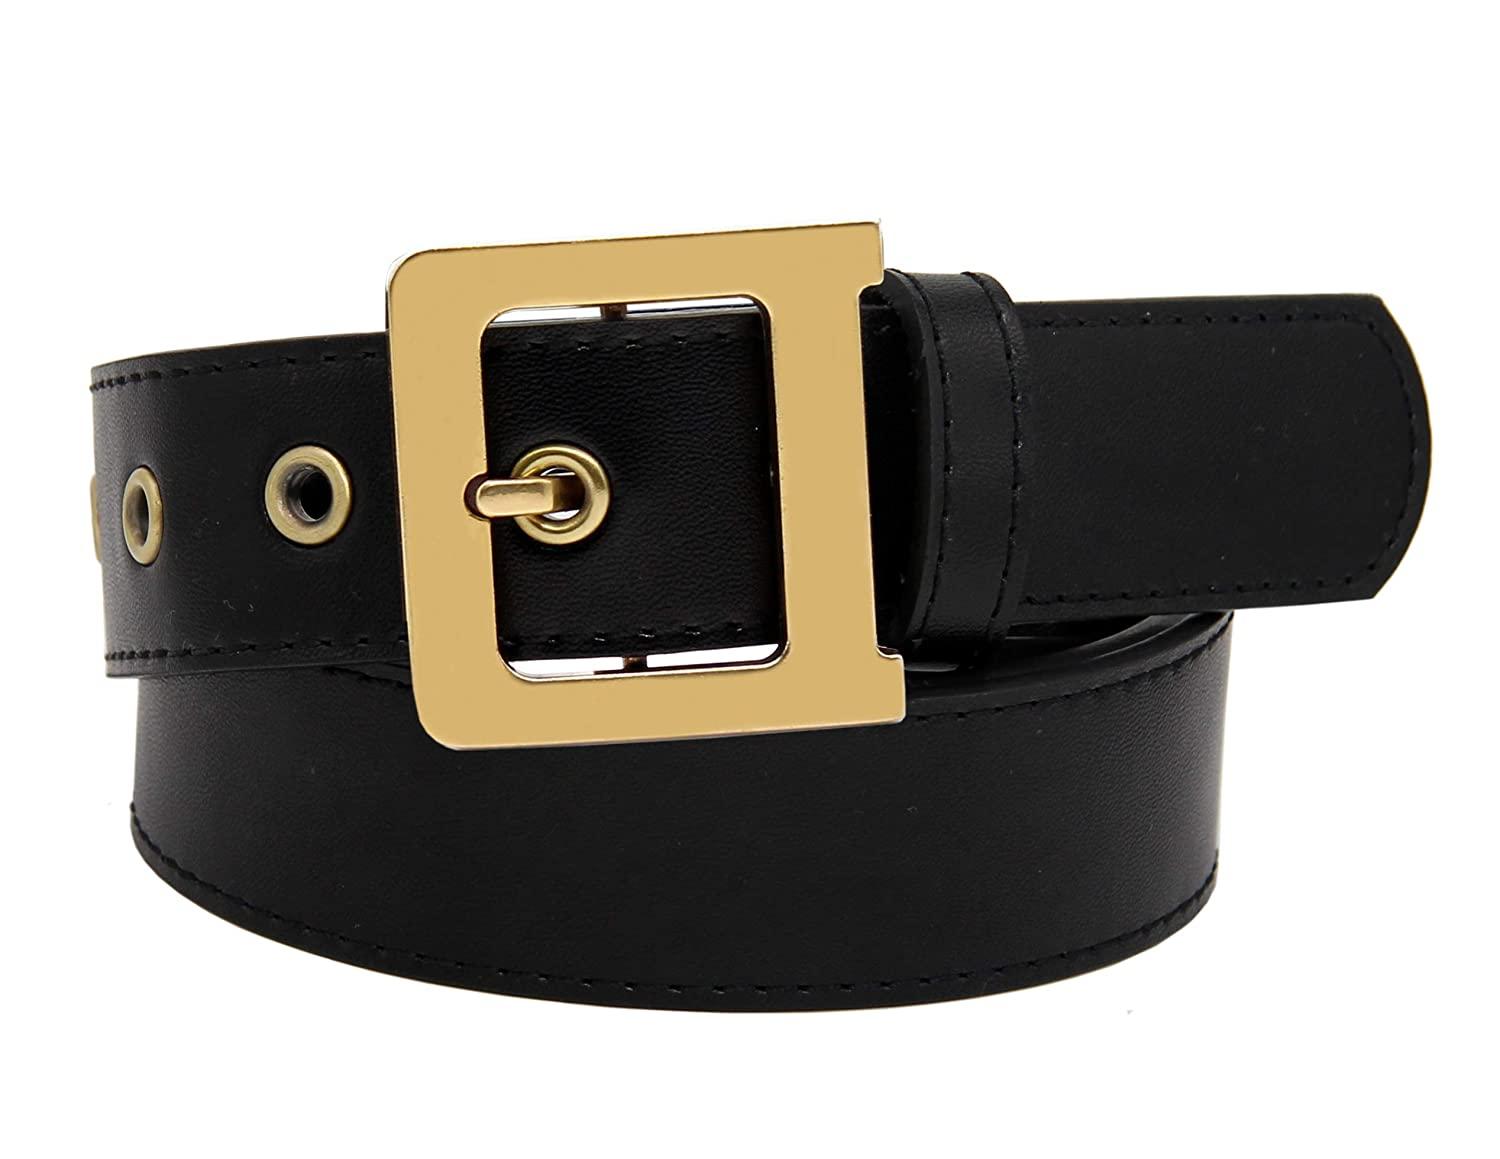 017c9640edd01 Women s Belt Cowhide Leather Belts Fashion Design D Buckle for Pants Jeans  Shorts Ladies Genuine Belts BY DUOAI at Amazon Women s Clothing store